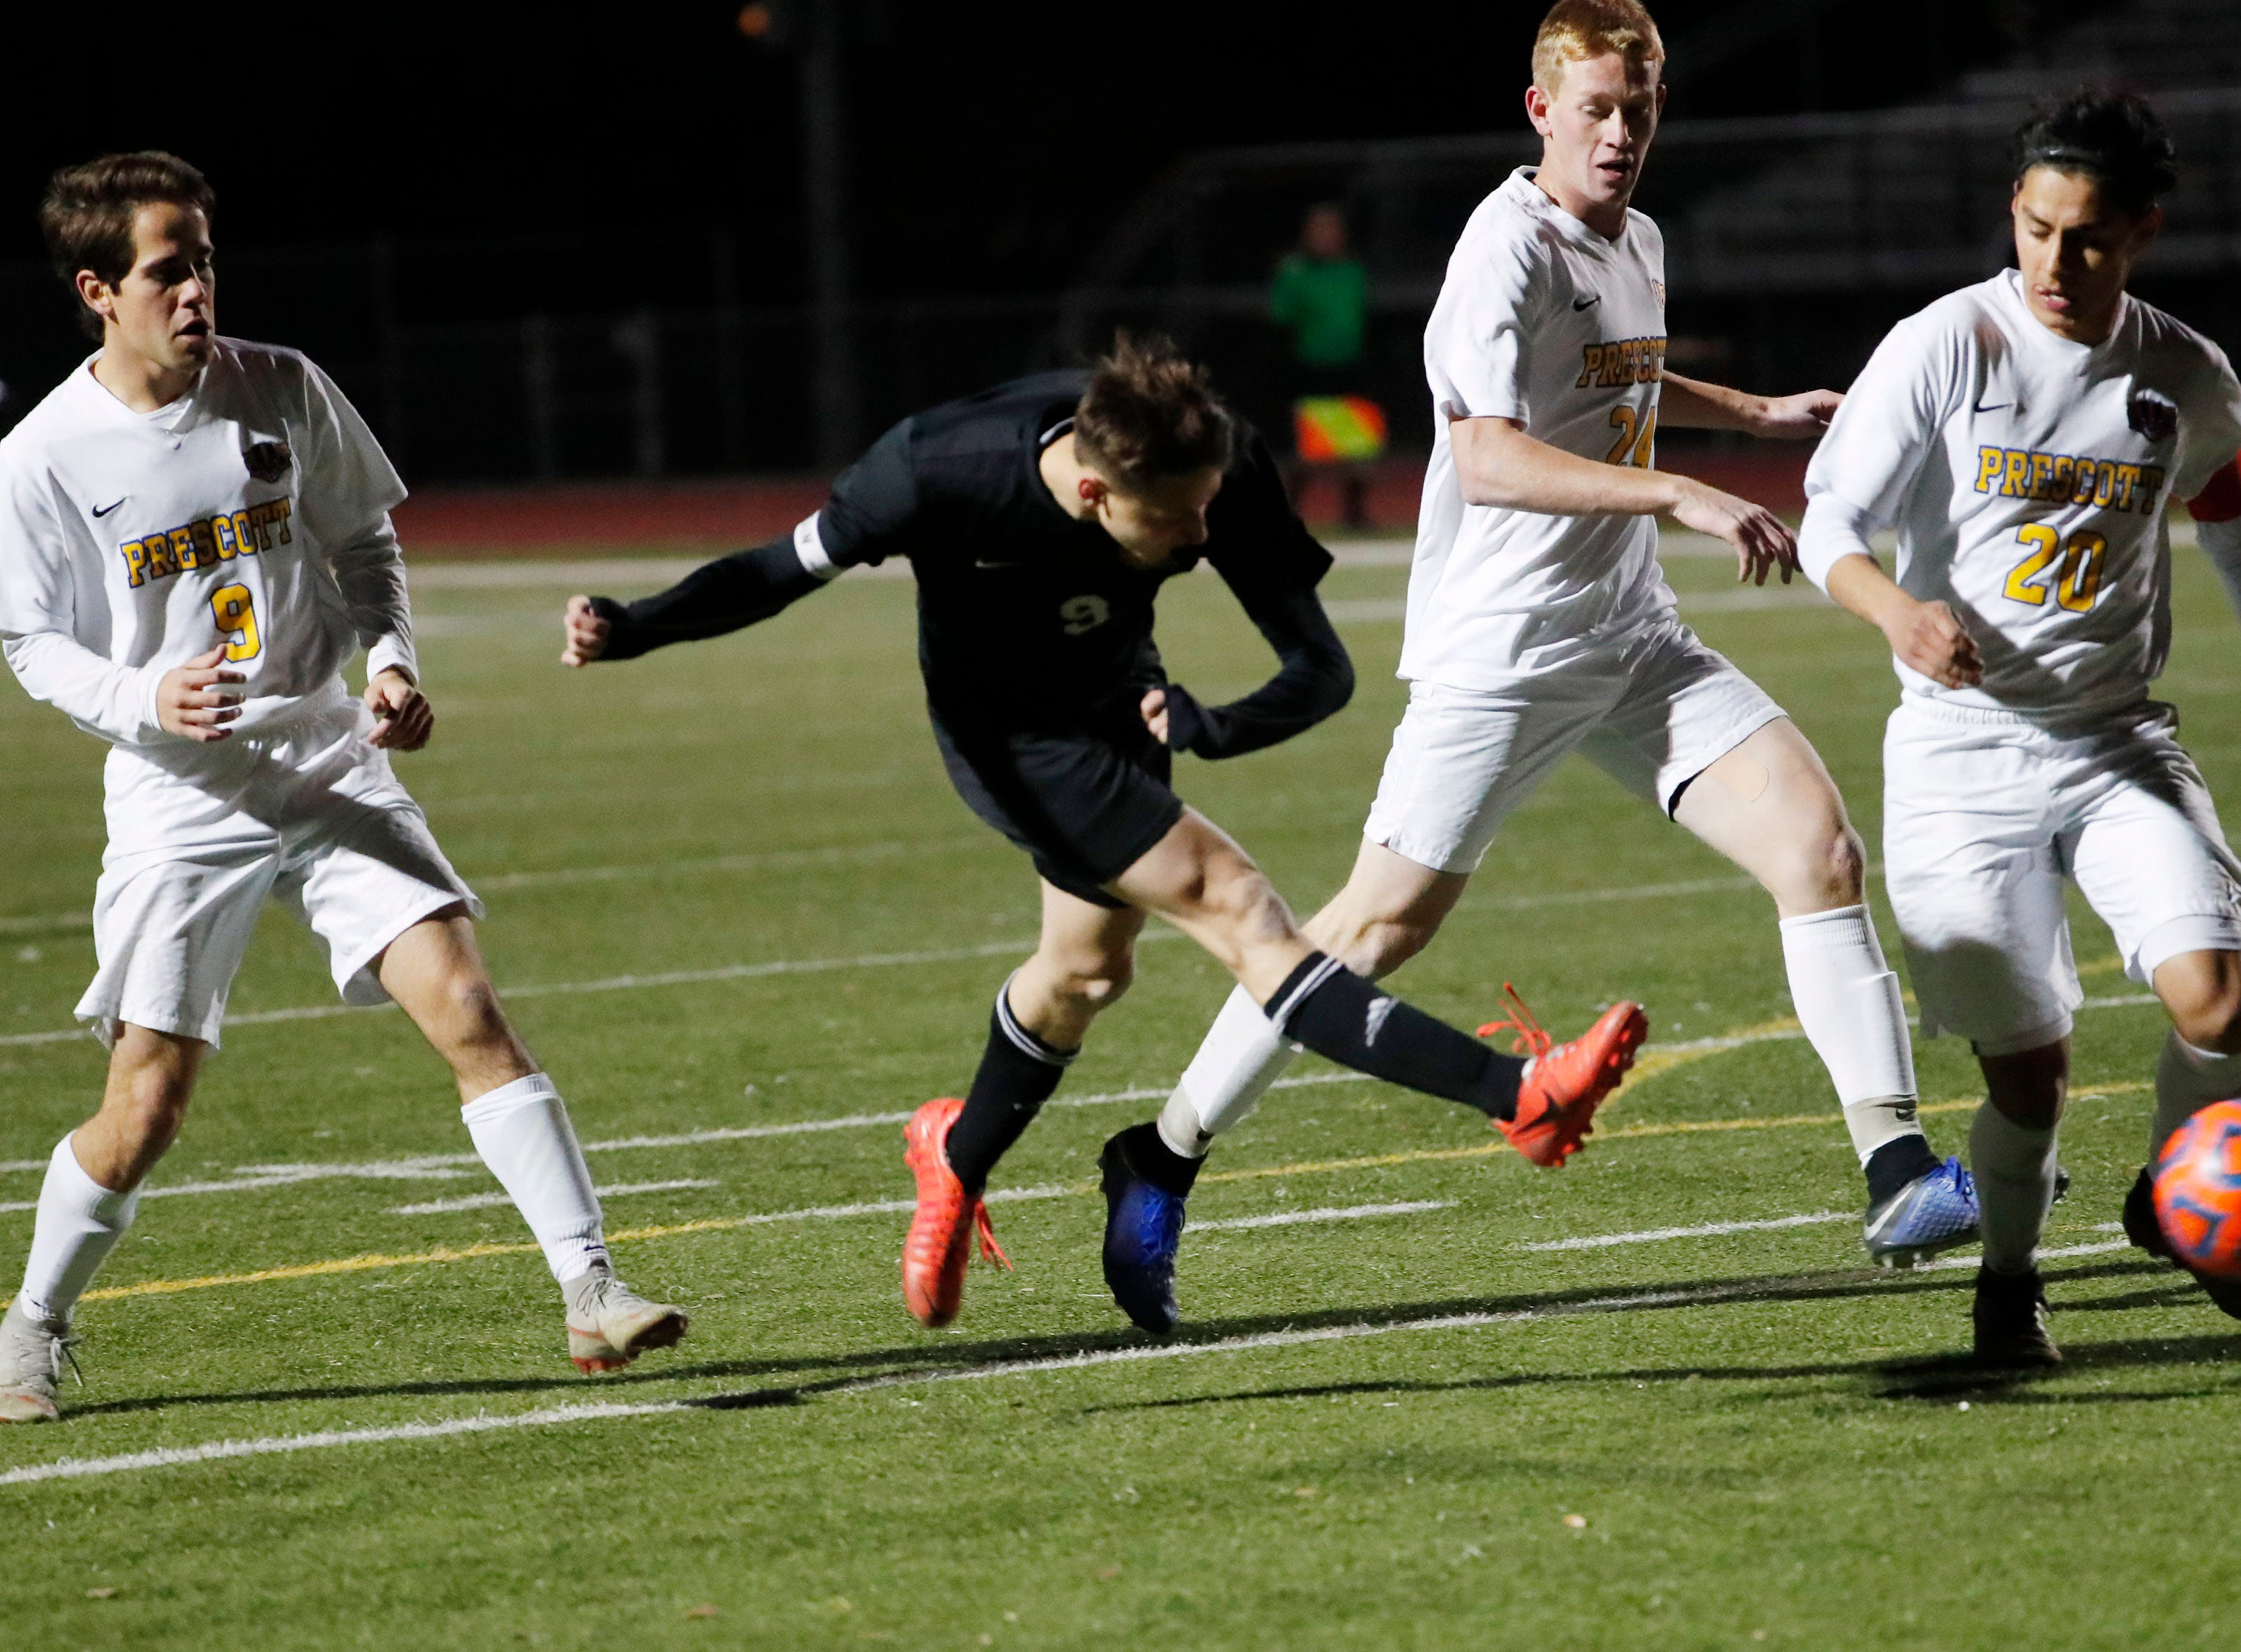 Salpointe's Francisco Manzo (9) scores the winning goal against Prescott during the Boys 4A State Championship soccer game in Gilbert Feb. 19, 2019.